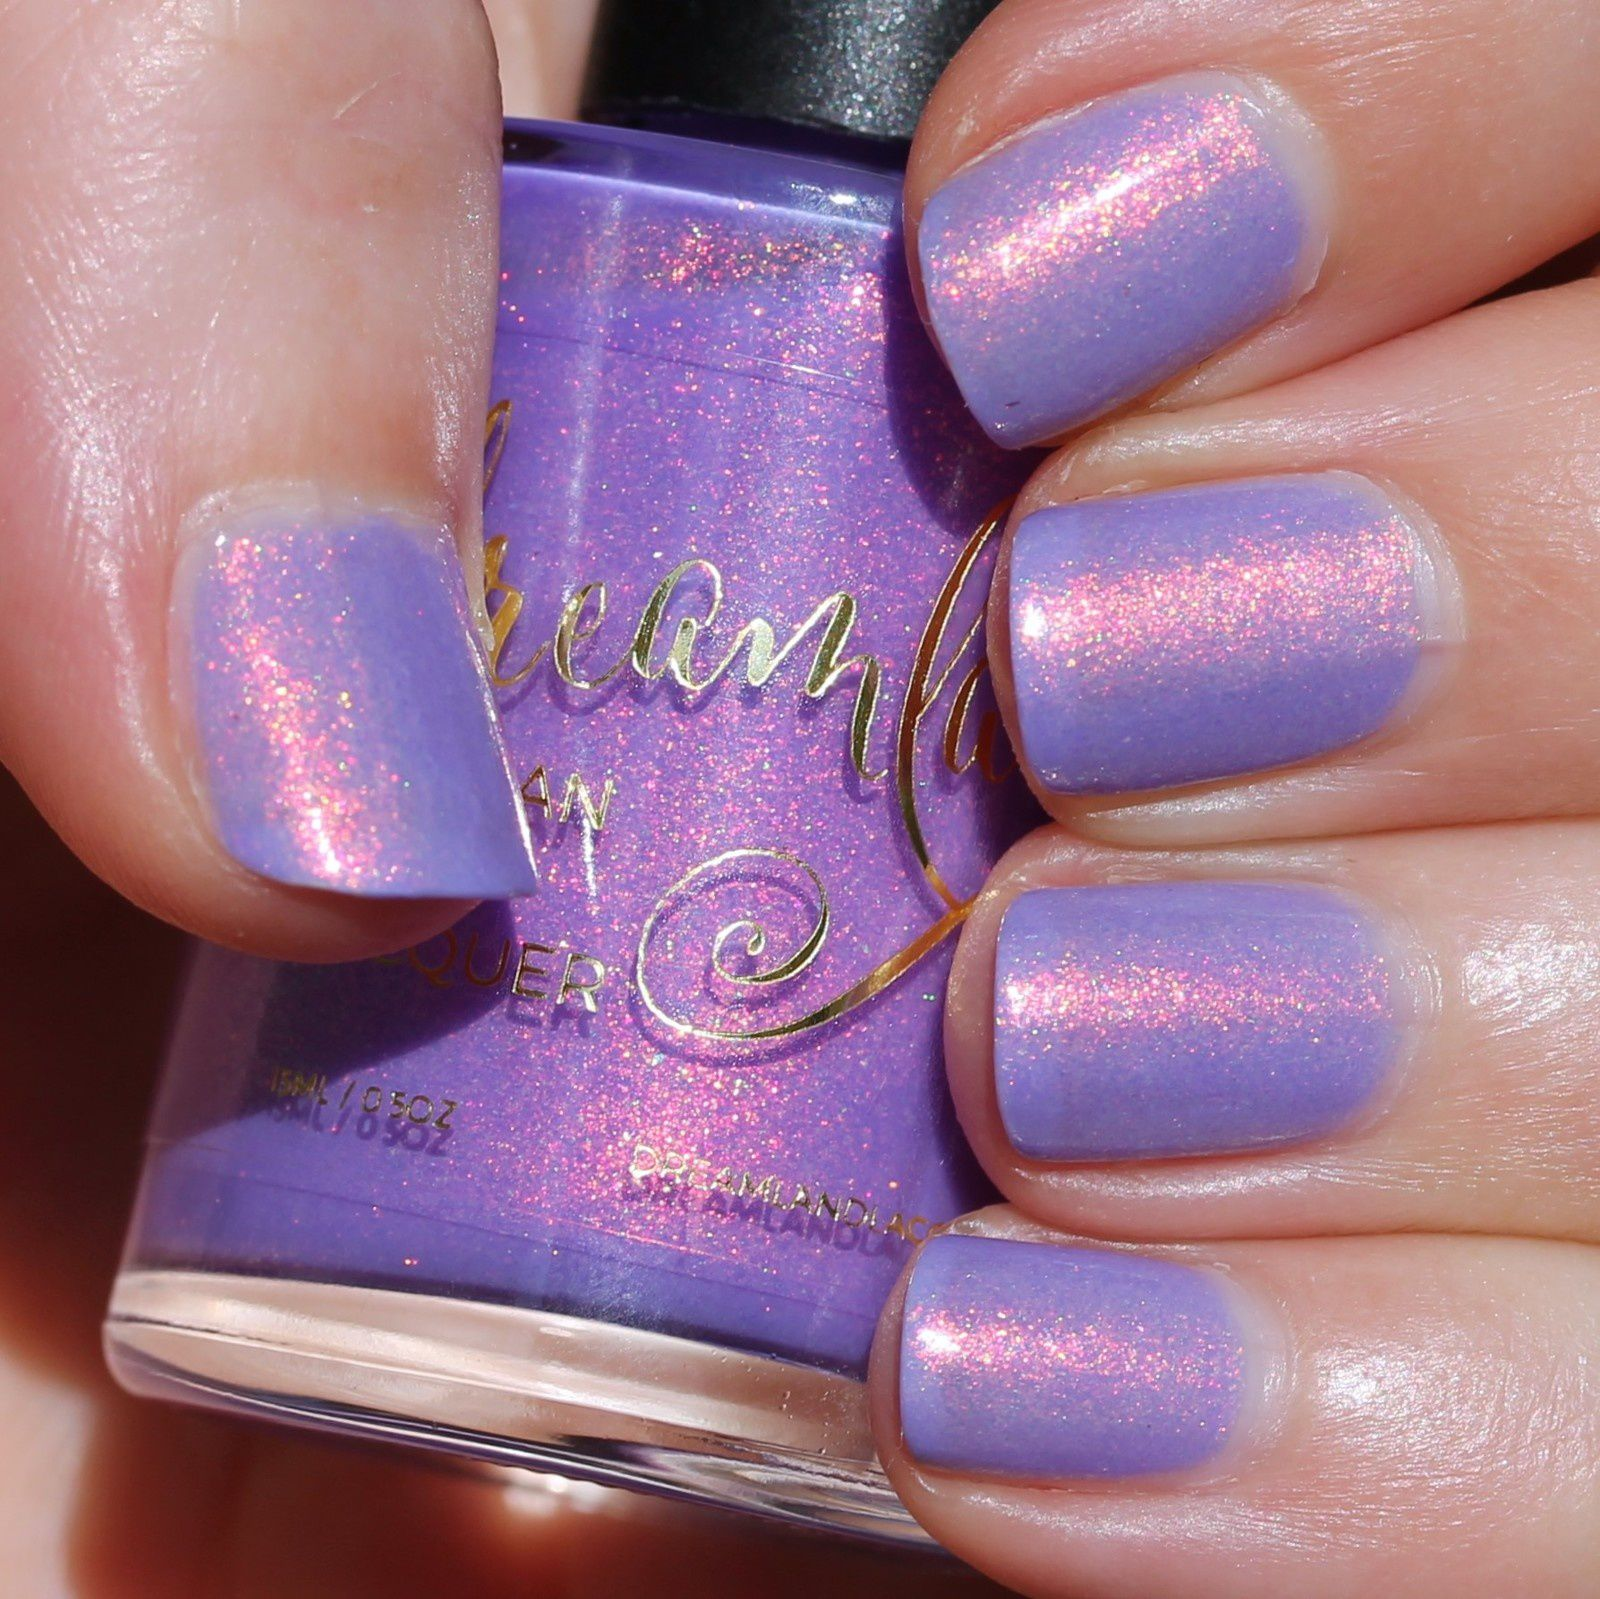 Essie Fill The Gap Base Coat / Dreamland Lacquer You've Been Rickrolled! / Essie Gel Top Coat